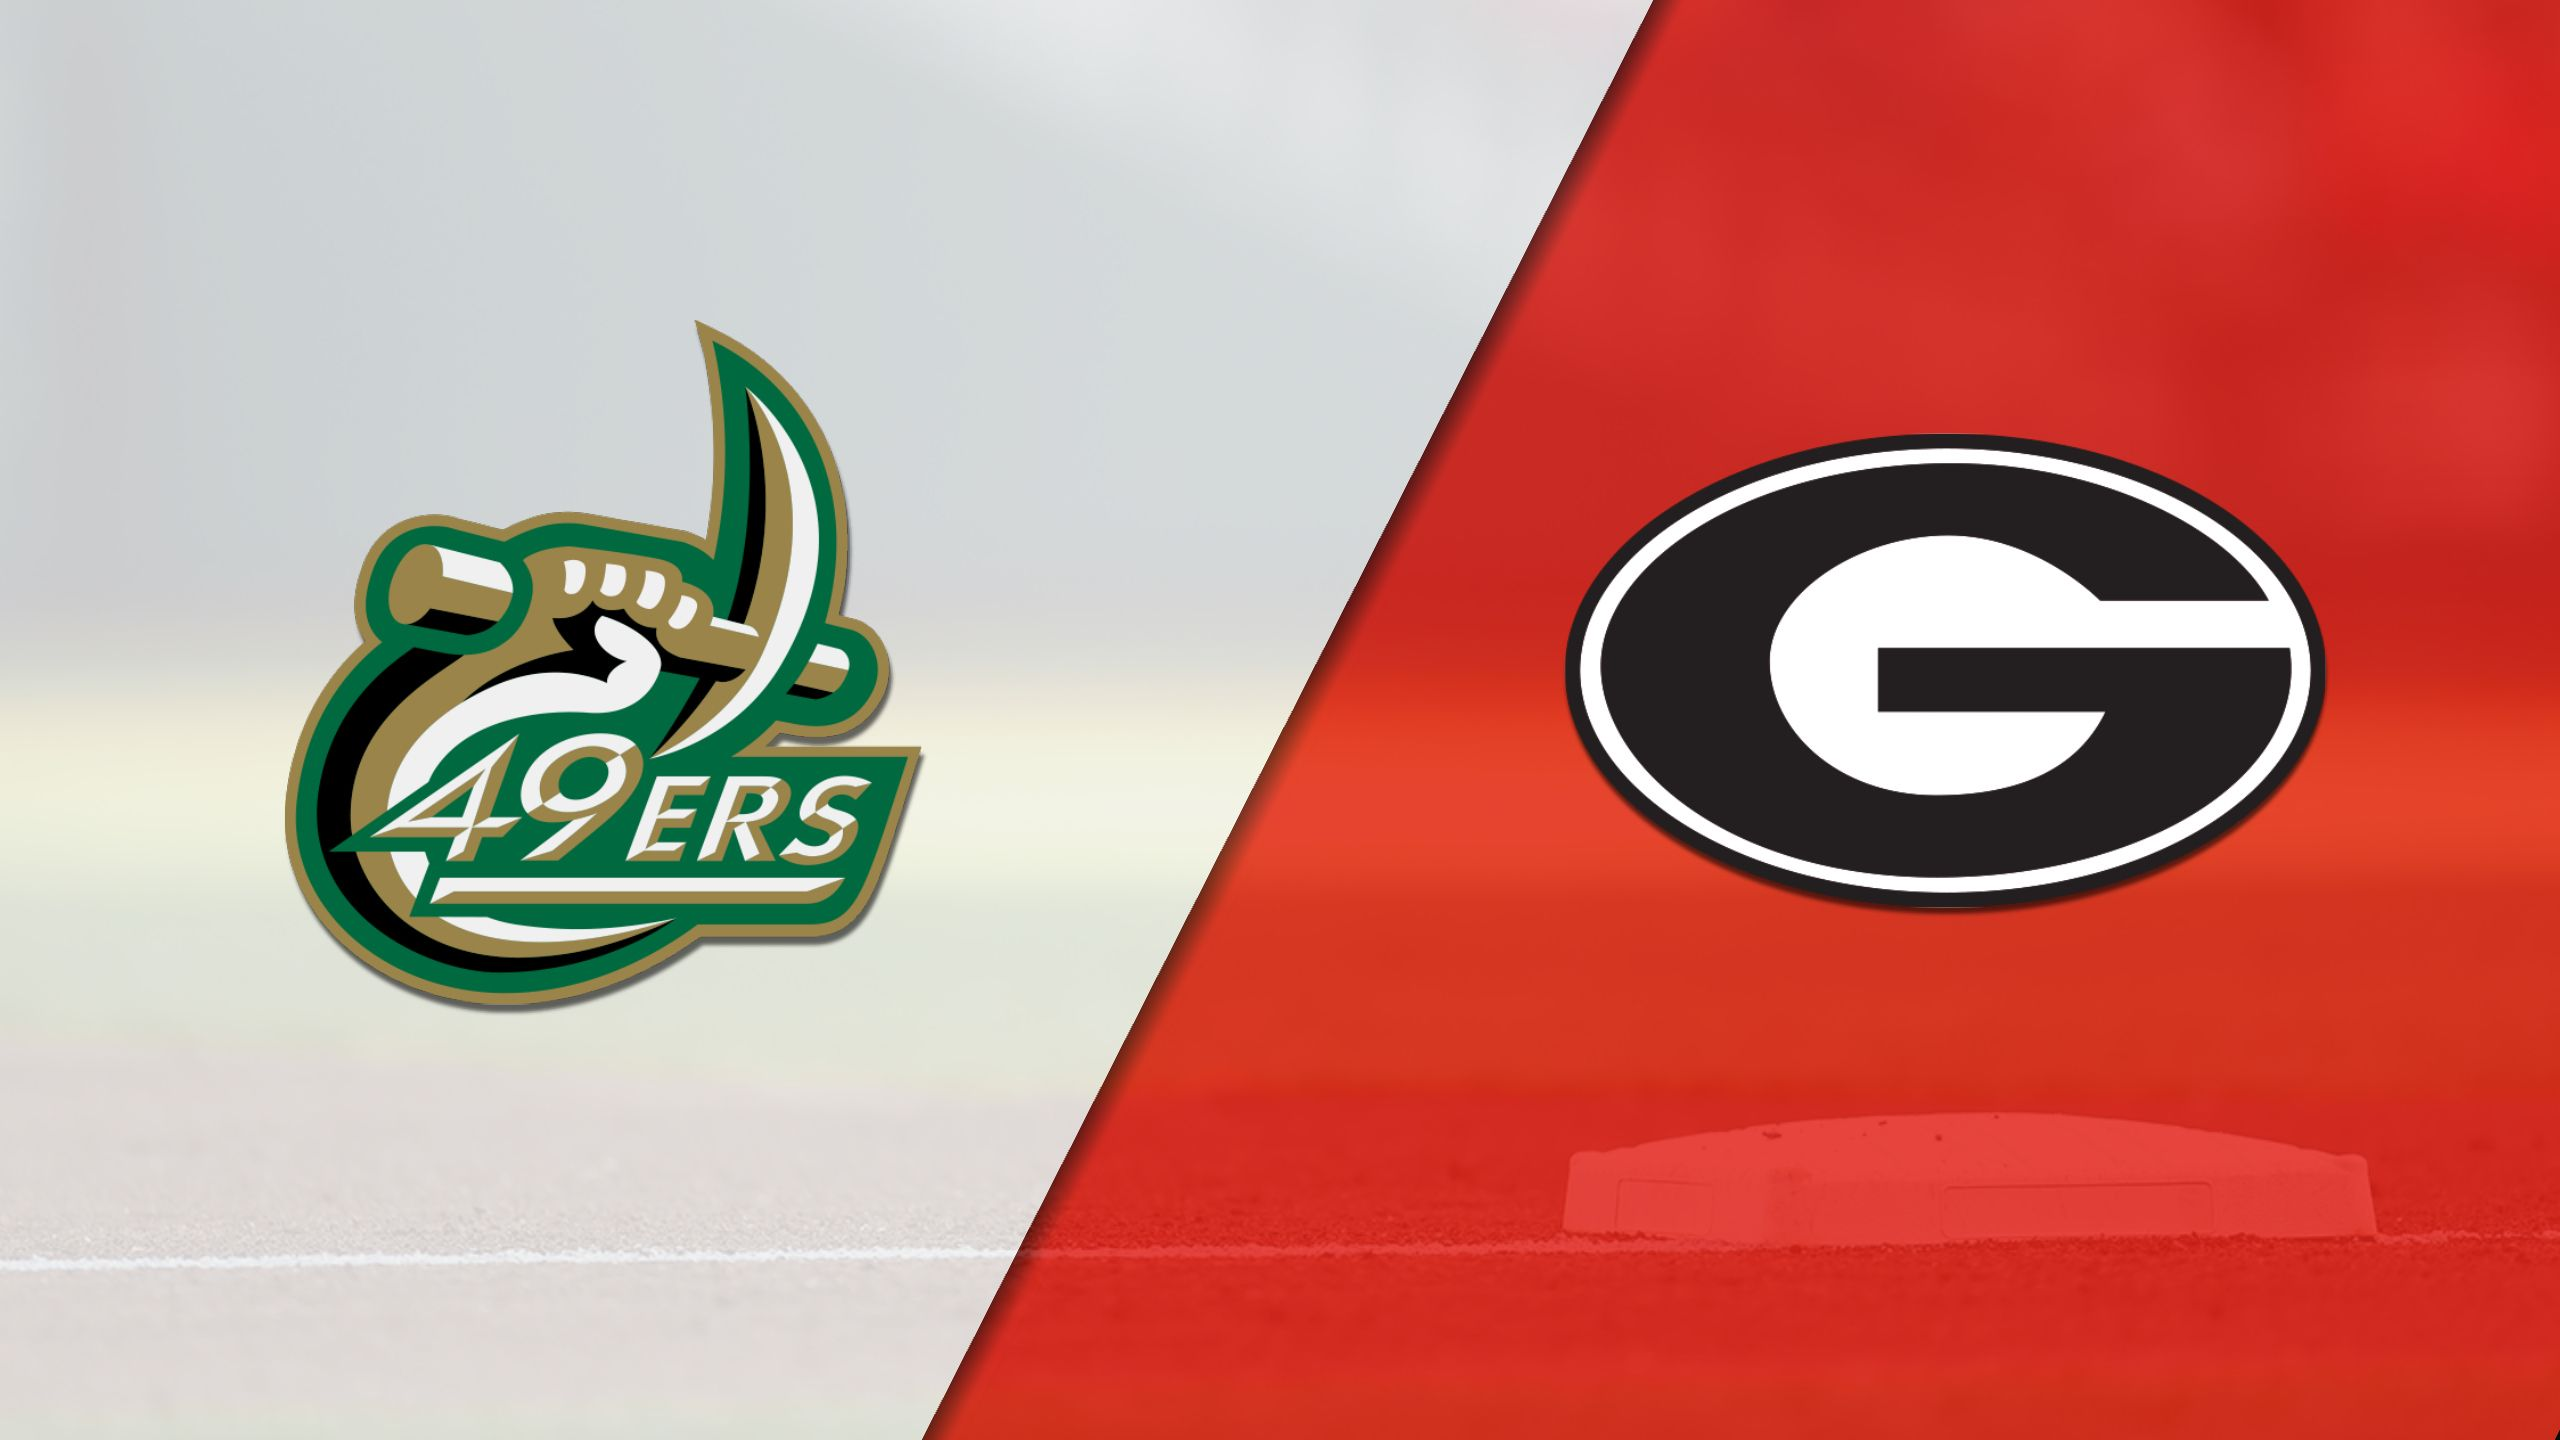 UNC Charlotte vs. Georgia (Baseball)